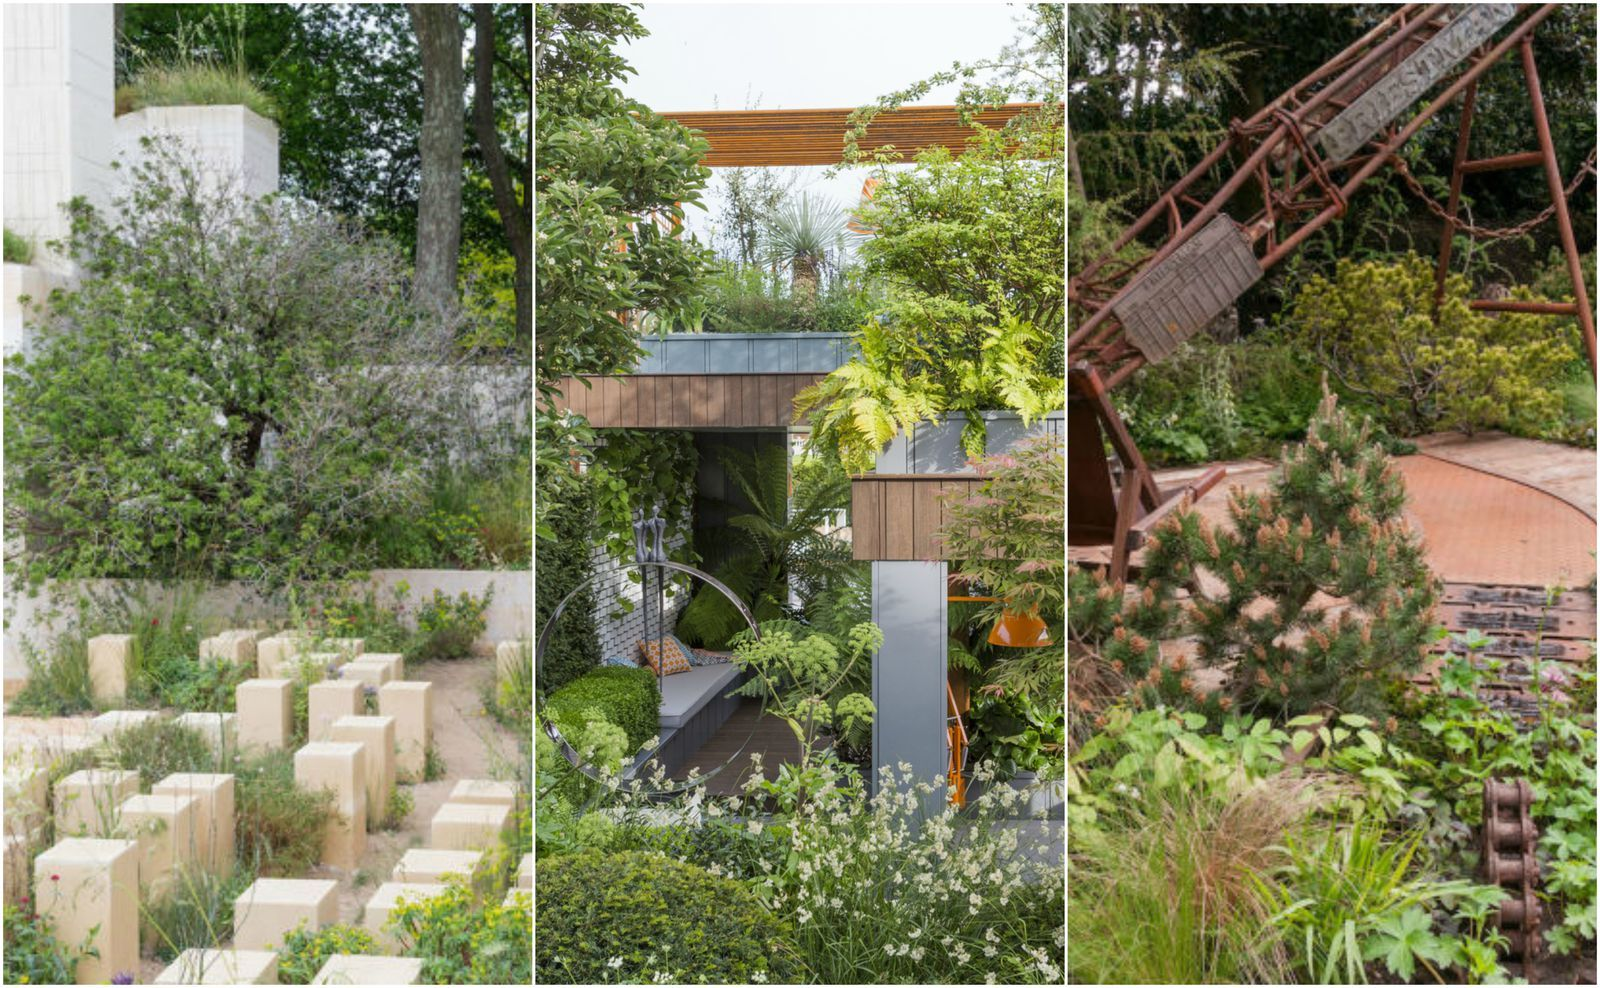 RHS Chelsea Flower Show special award winners announced